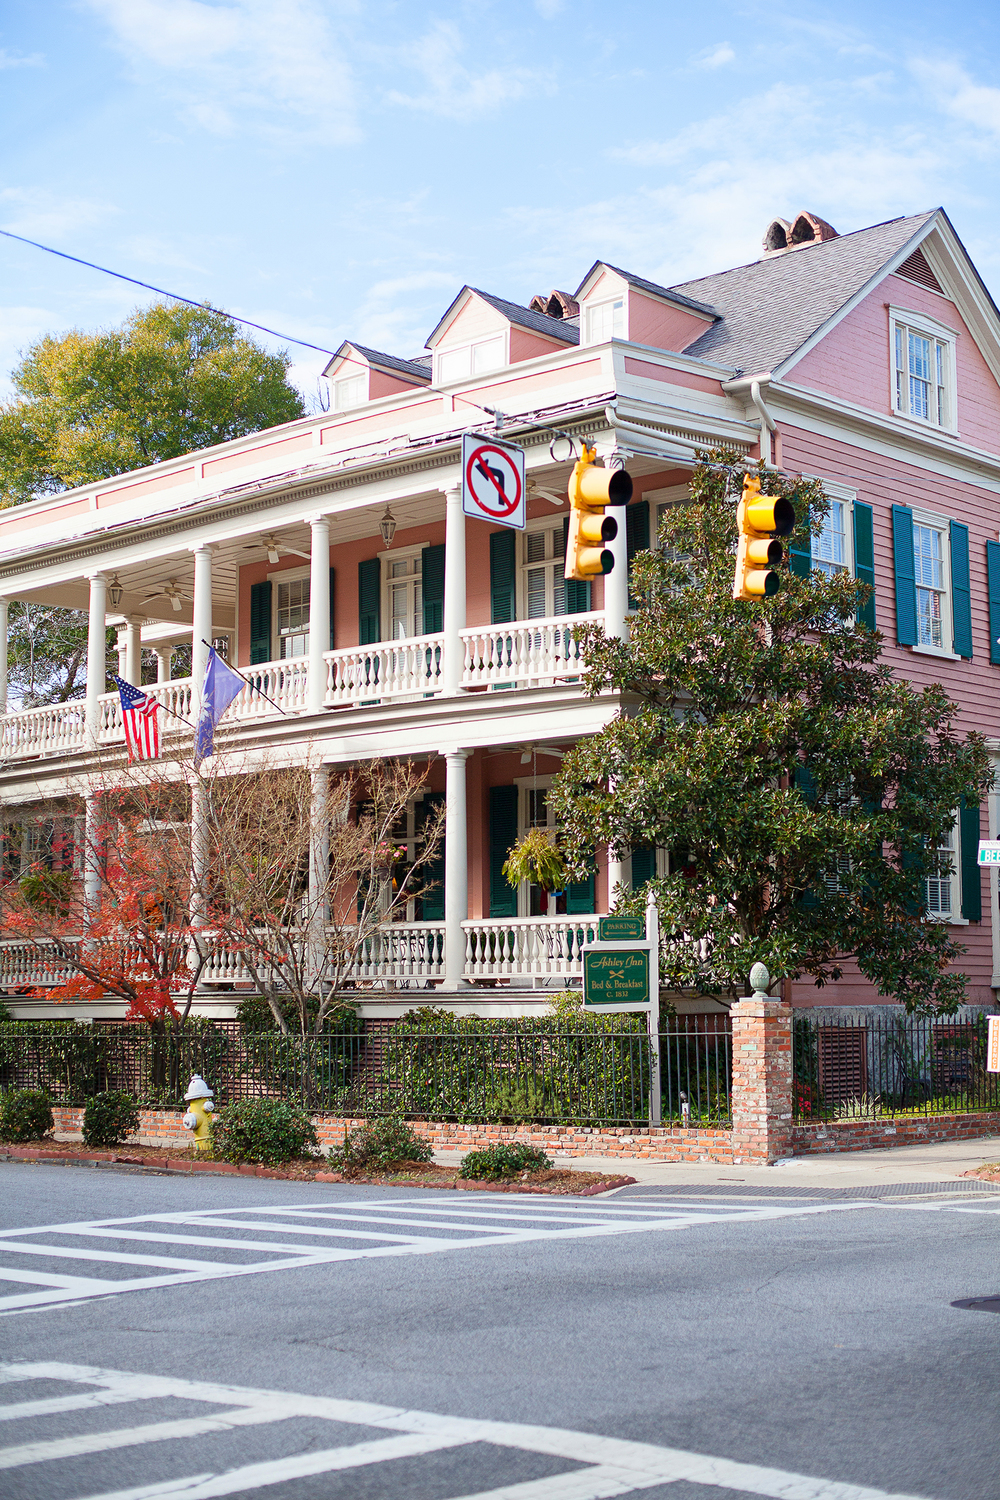 Ashley Inn Bed & Breakfast